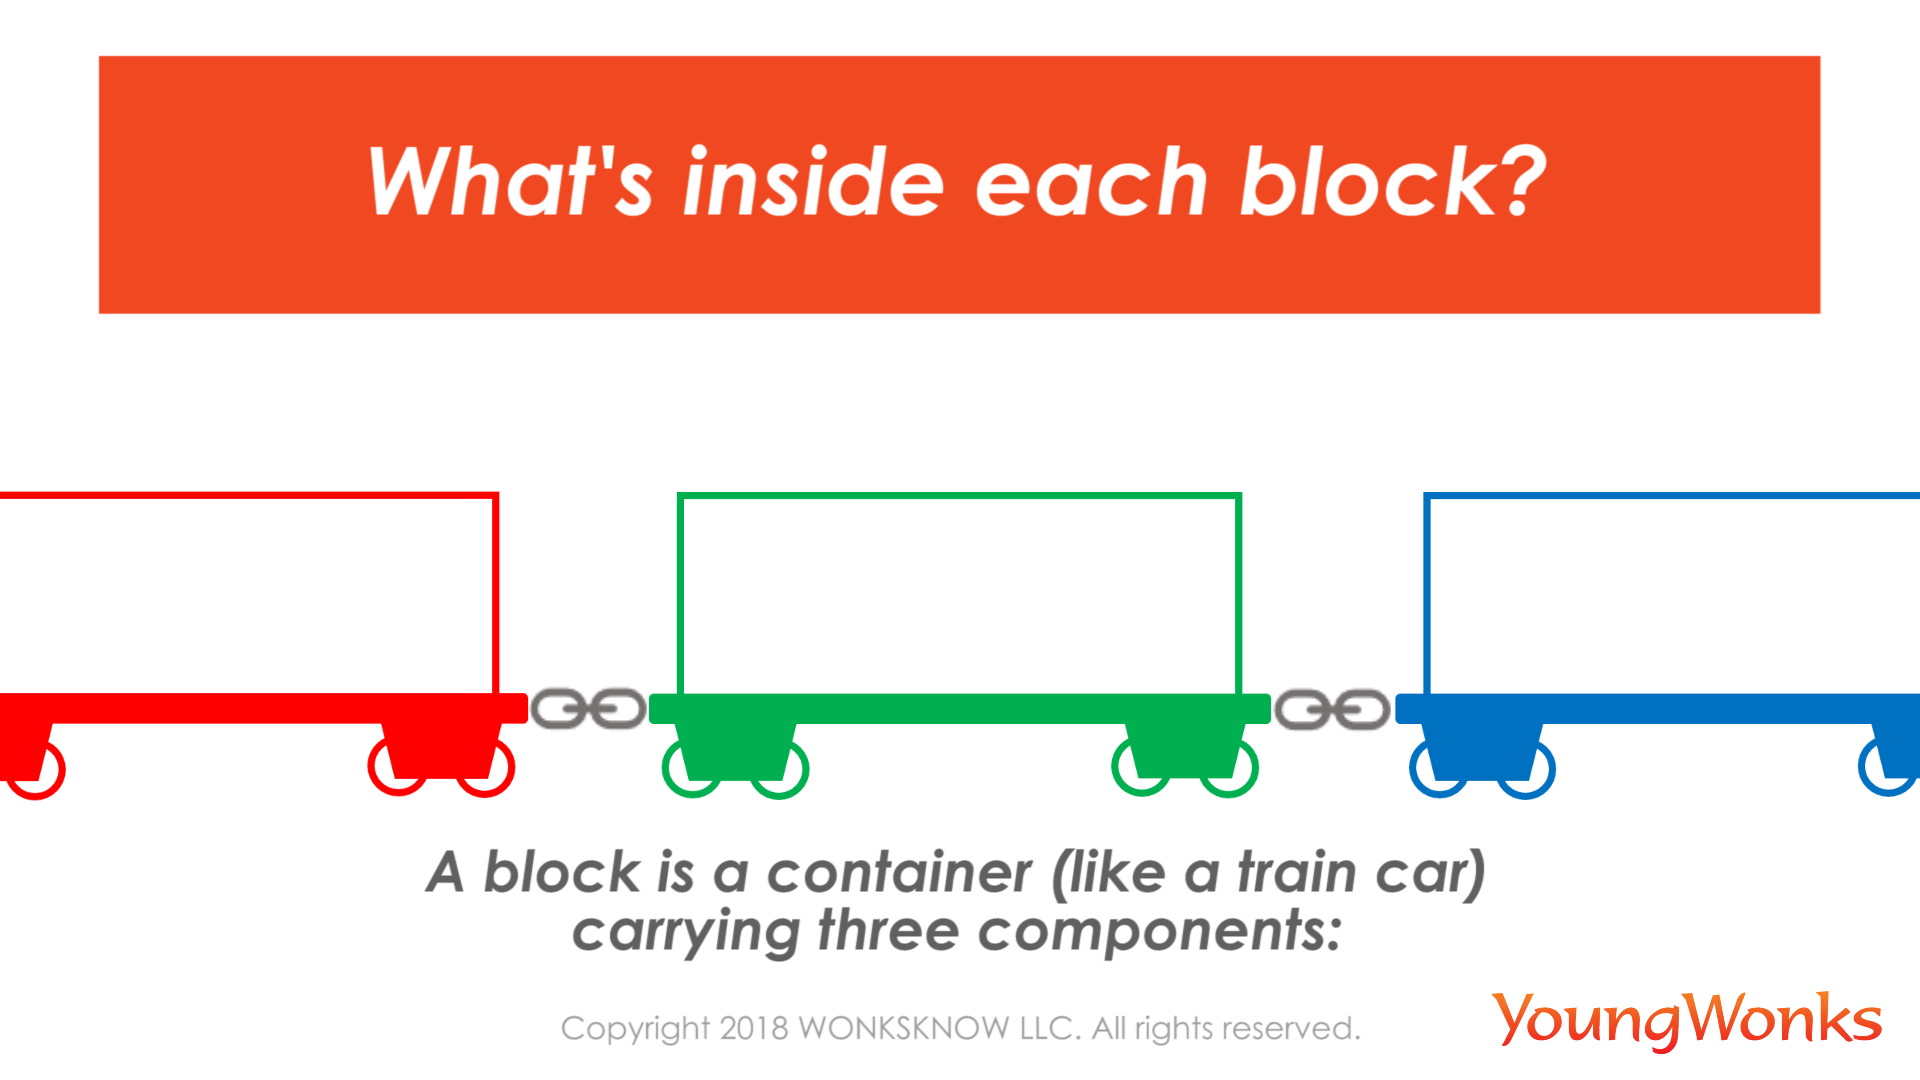 Three components of each block